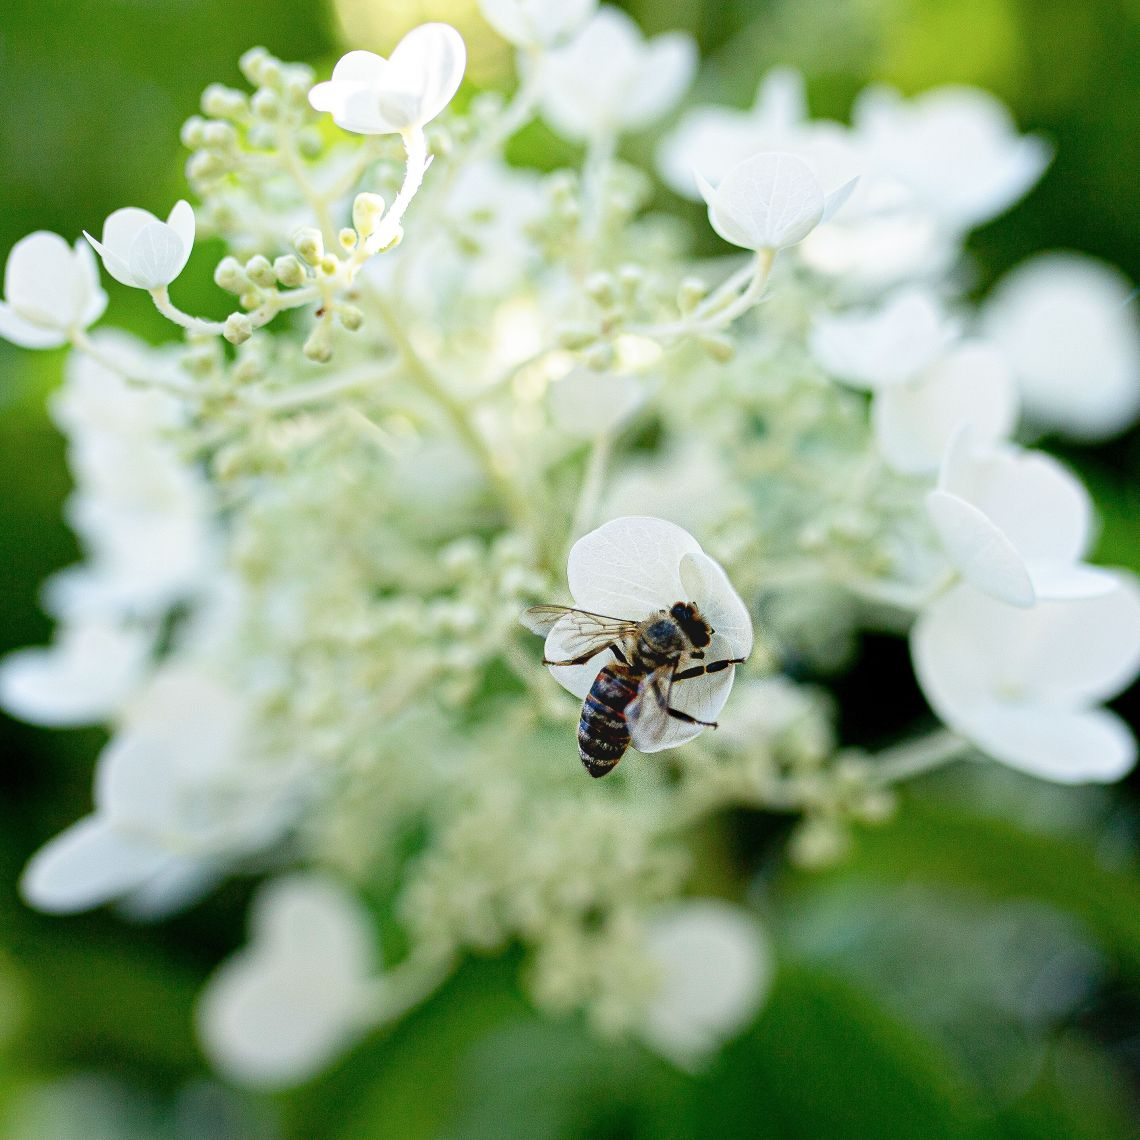 How To Attract Bees And Other Pollinators To Your Garden